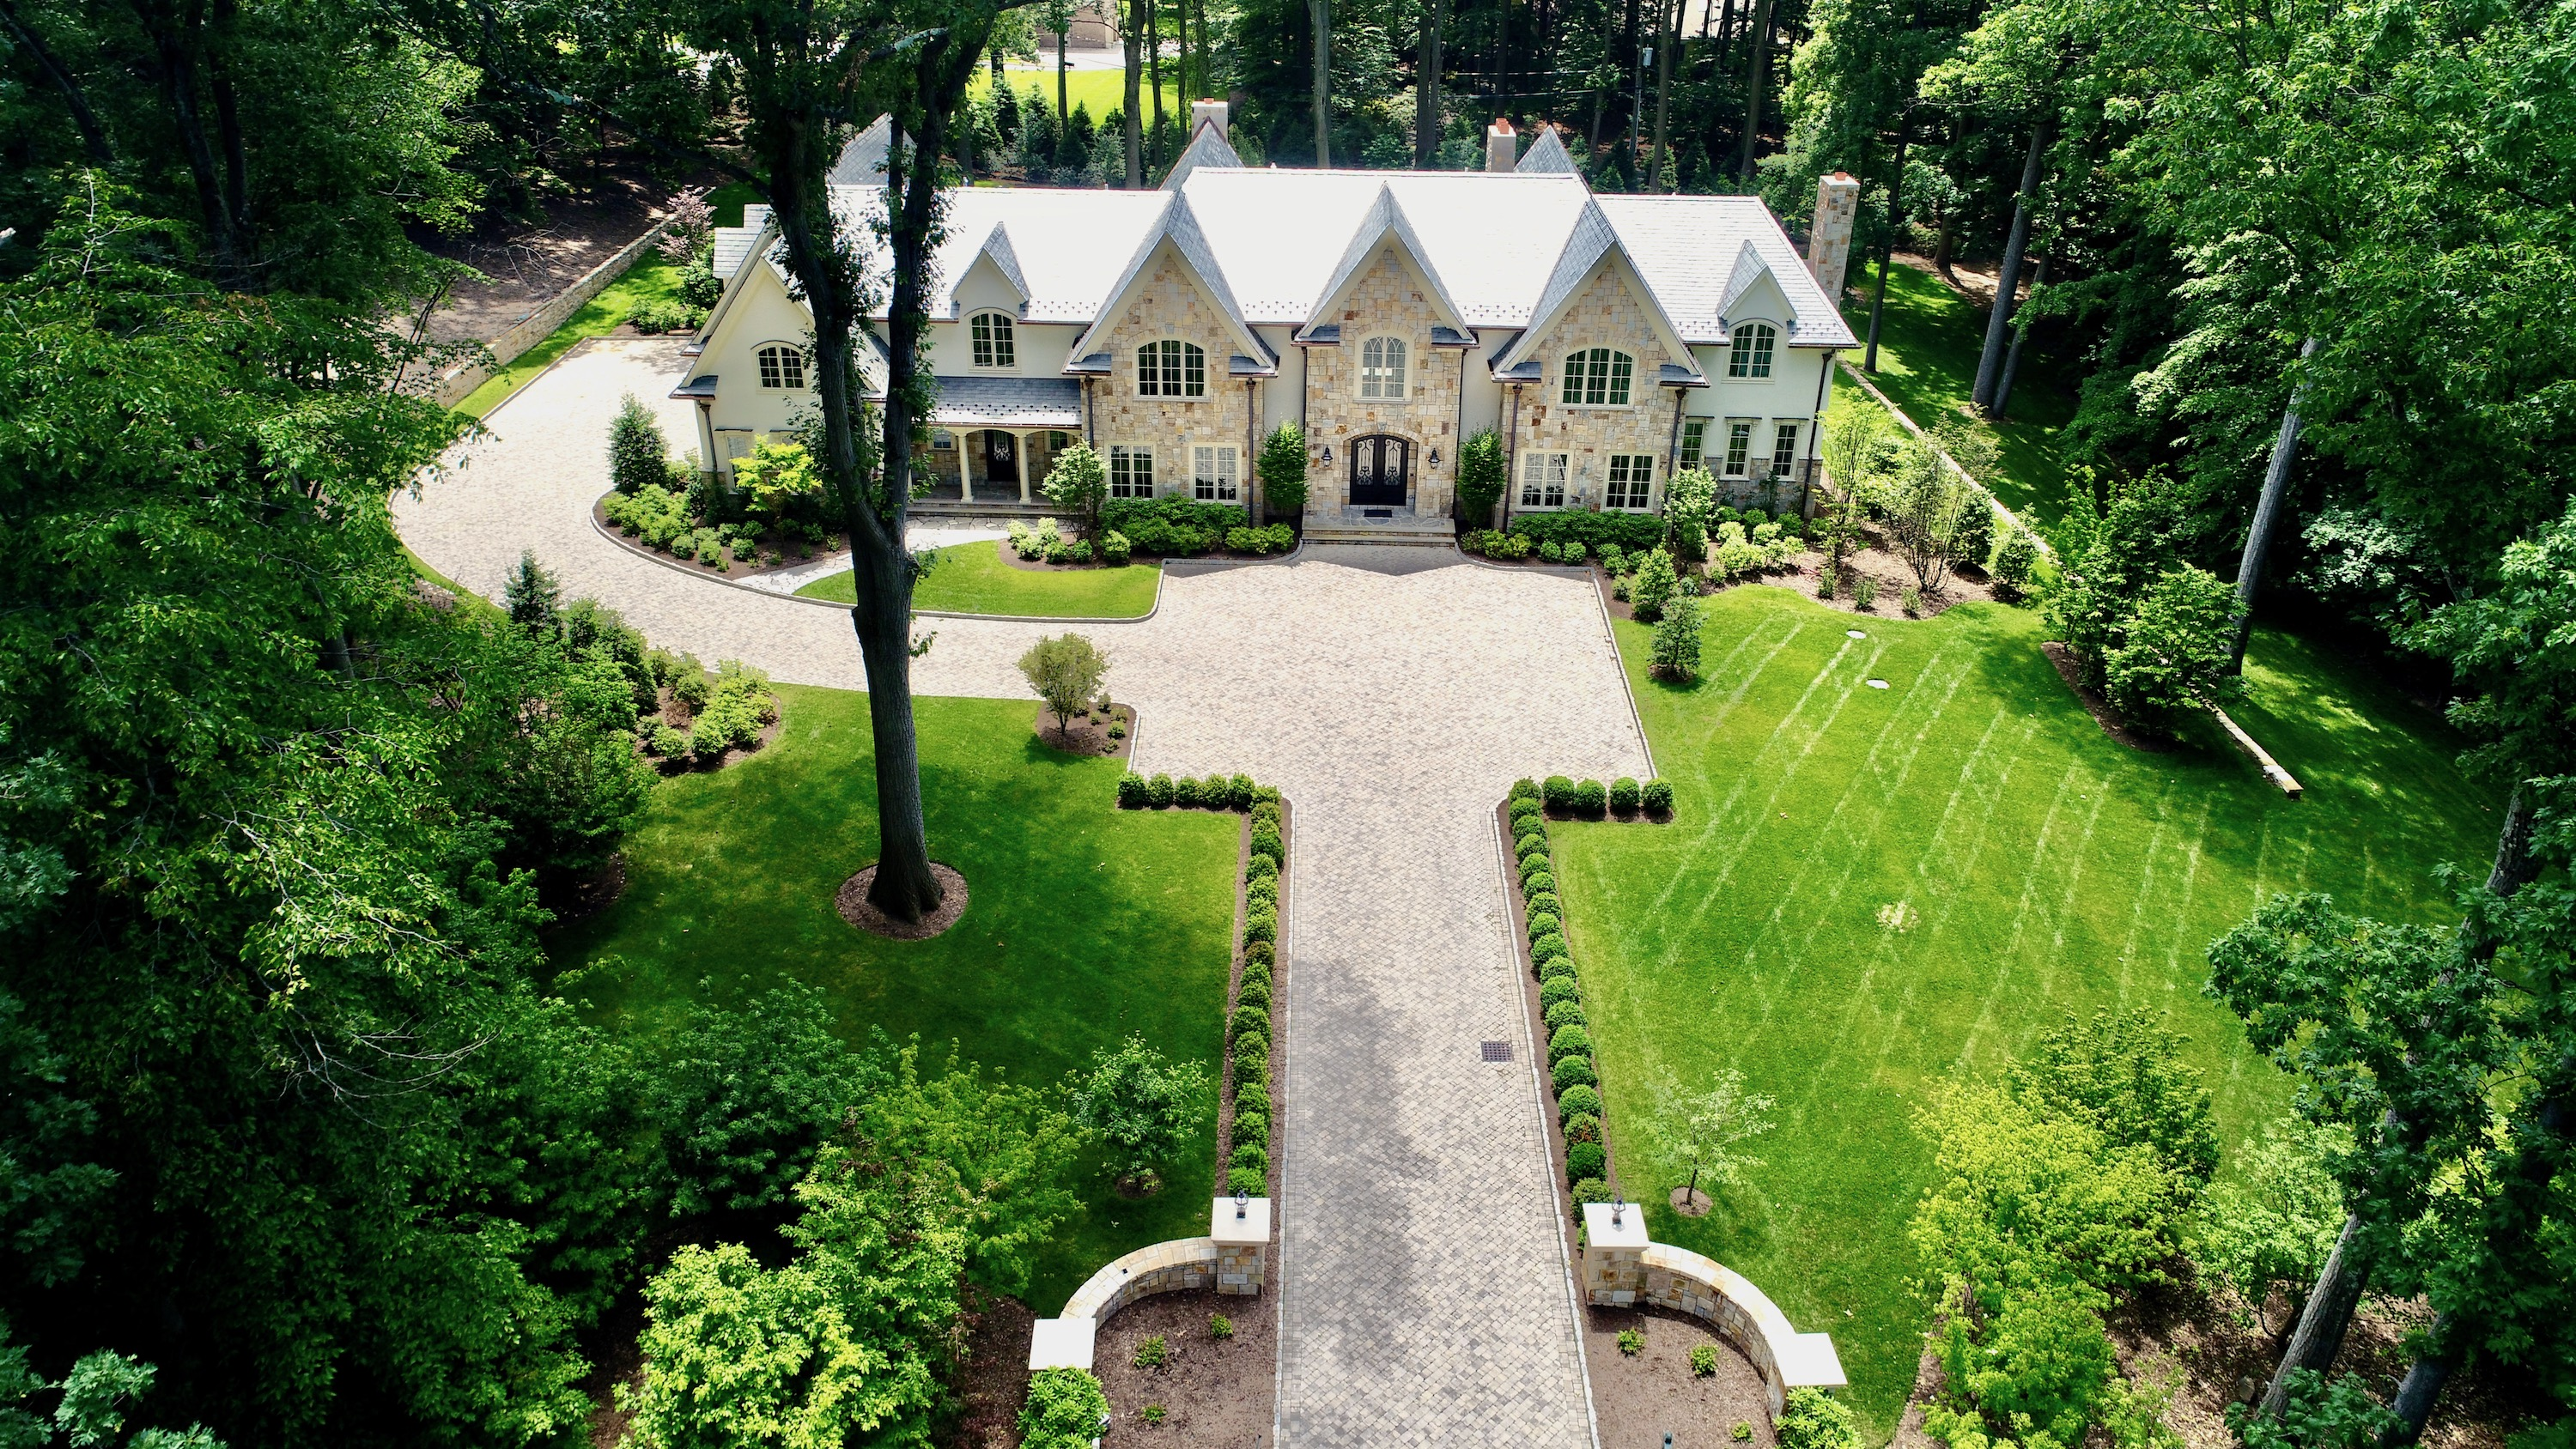 Daily Dream Home: Saddle River - Pursuitist